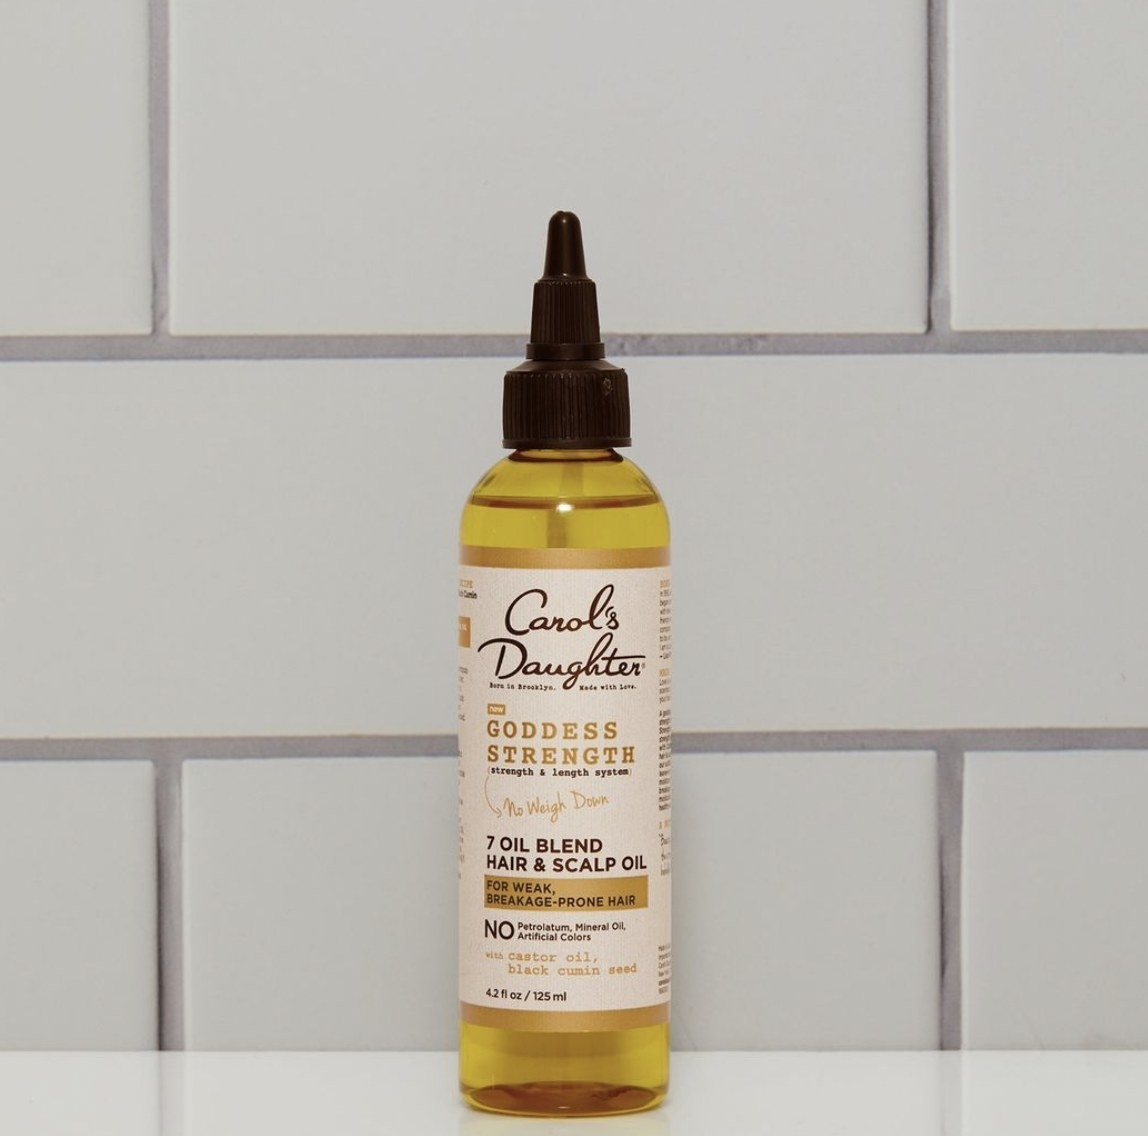 A bottle of scalp and hair oil